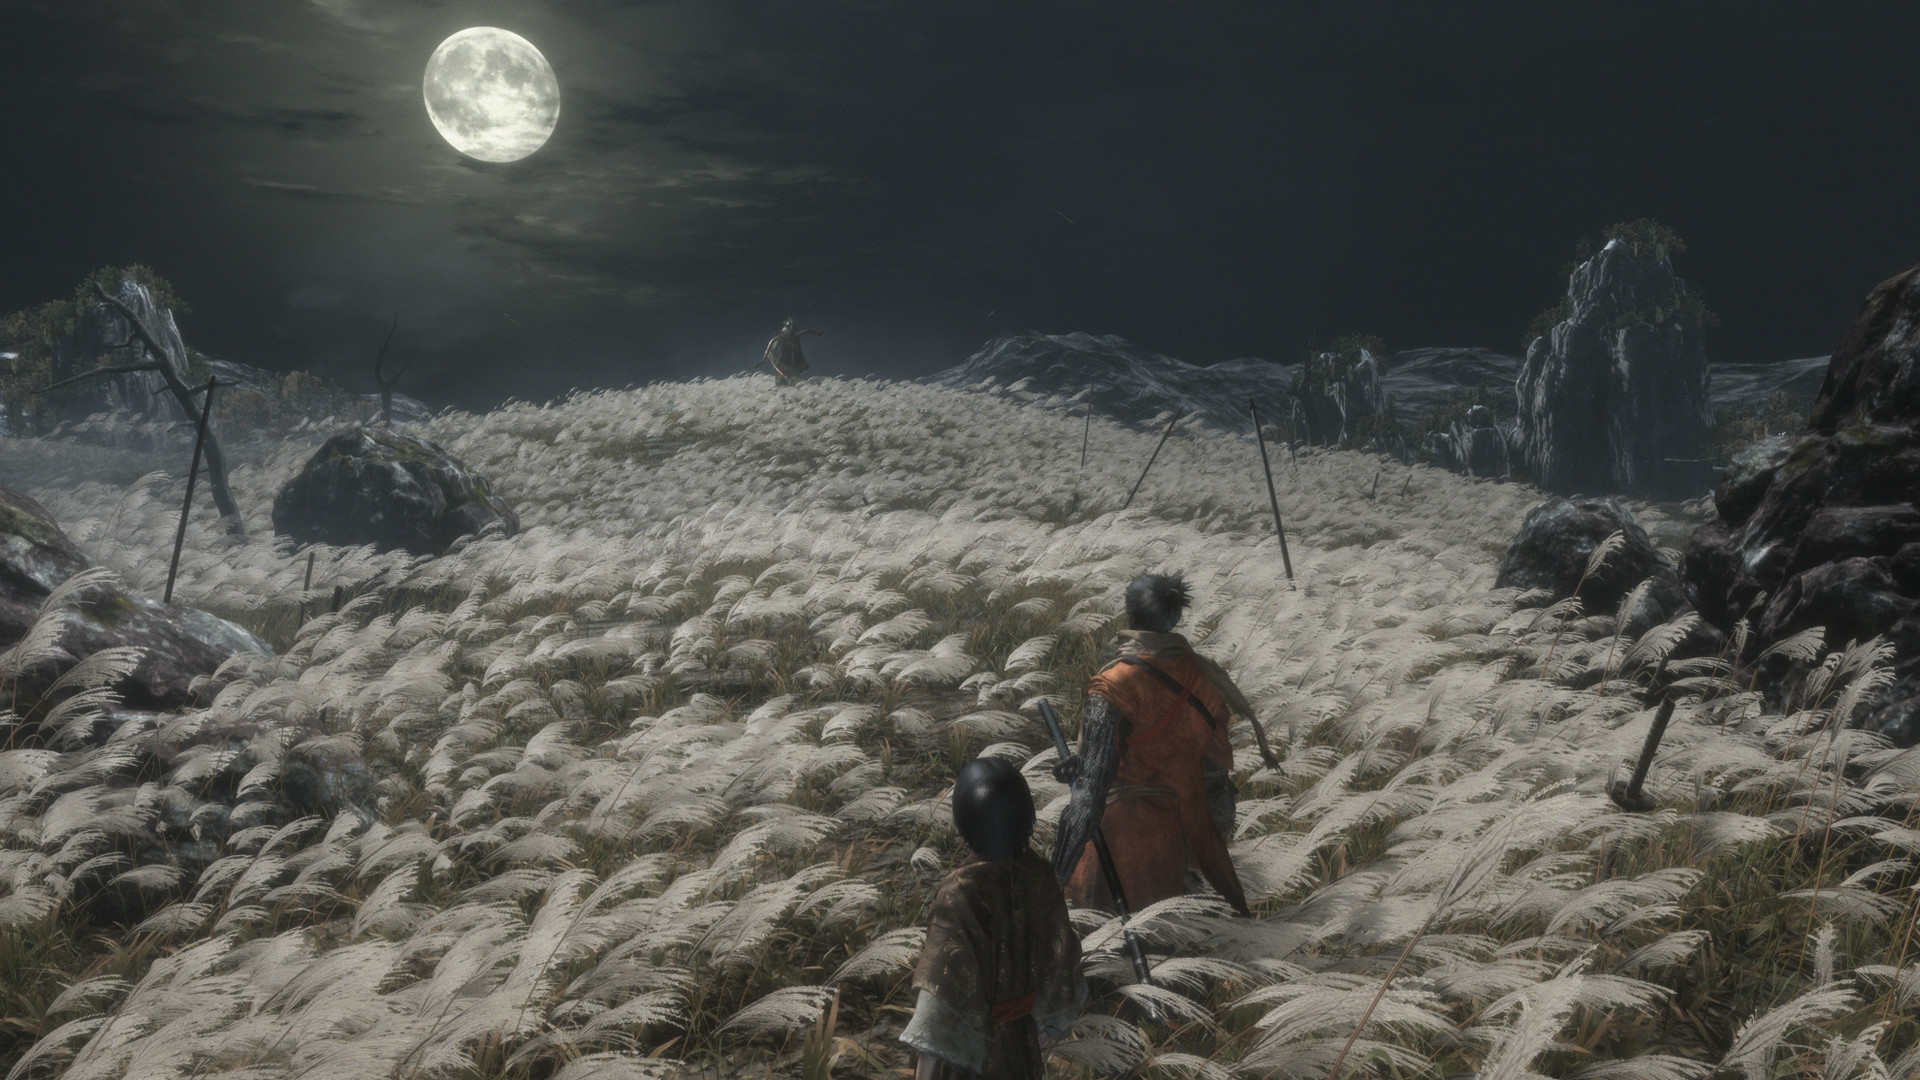 Sekiro: Shadows Die Twice [PC PS4 XONE] Ss_552bf9e99b3682d75c01ca4a55ba426e85f3b621